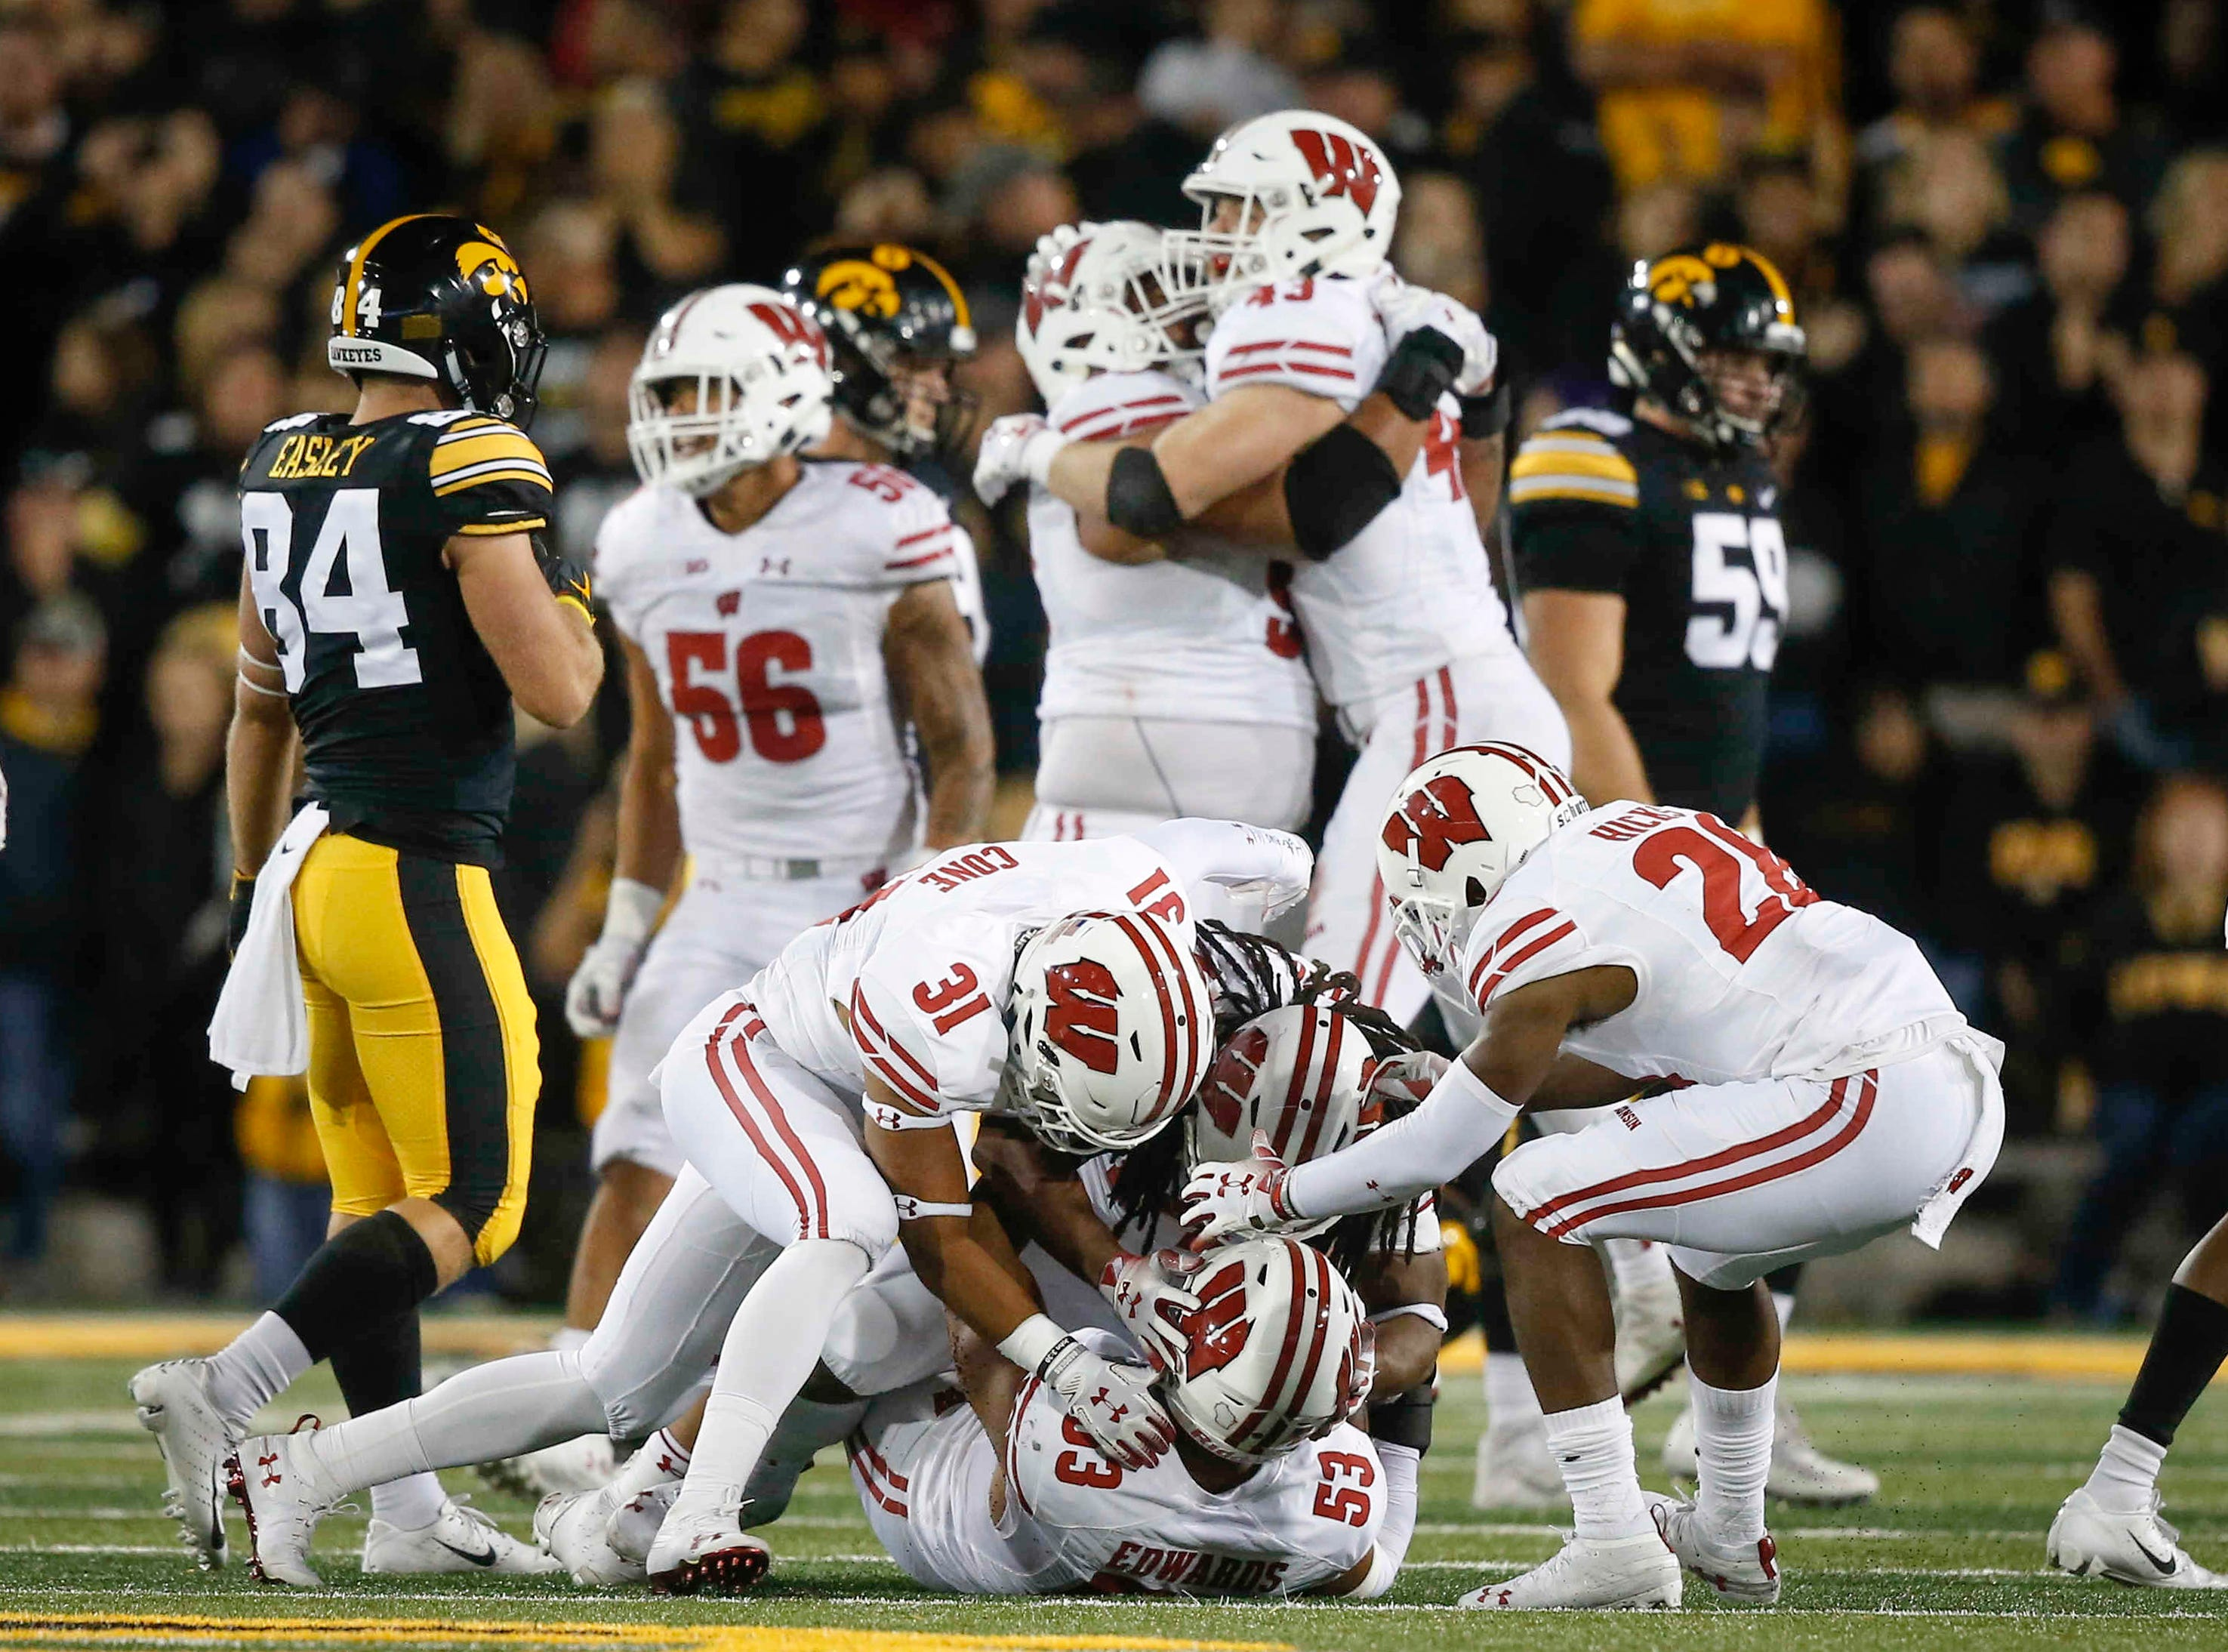 Members of the Wisconsin defense celebrate after pulling in an interception against Iowa quarterback Nate Stanley on Saturday, Sept. 22, 2018, at Kinnick Stadium in Iowa City.